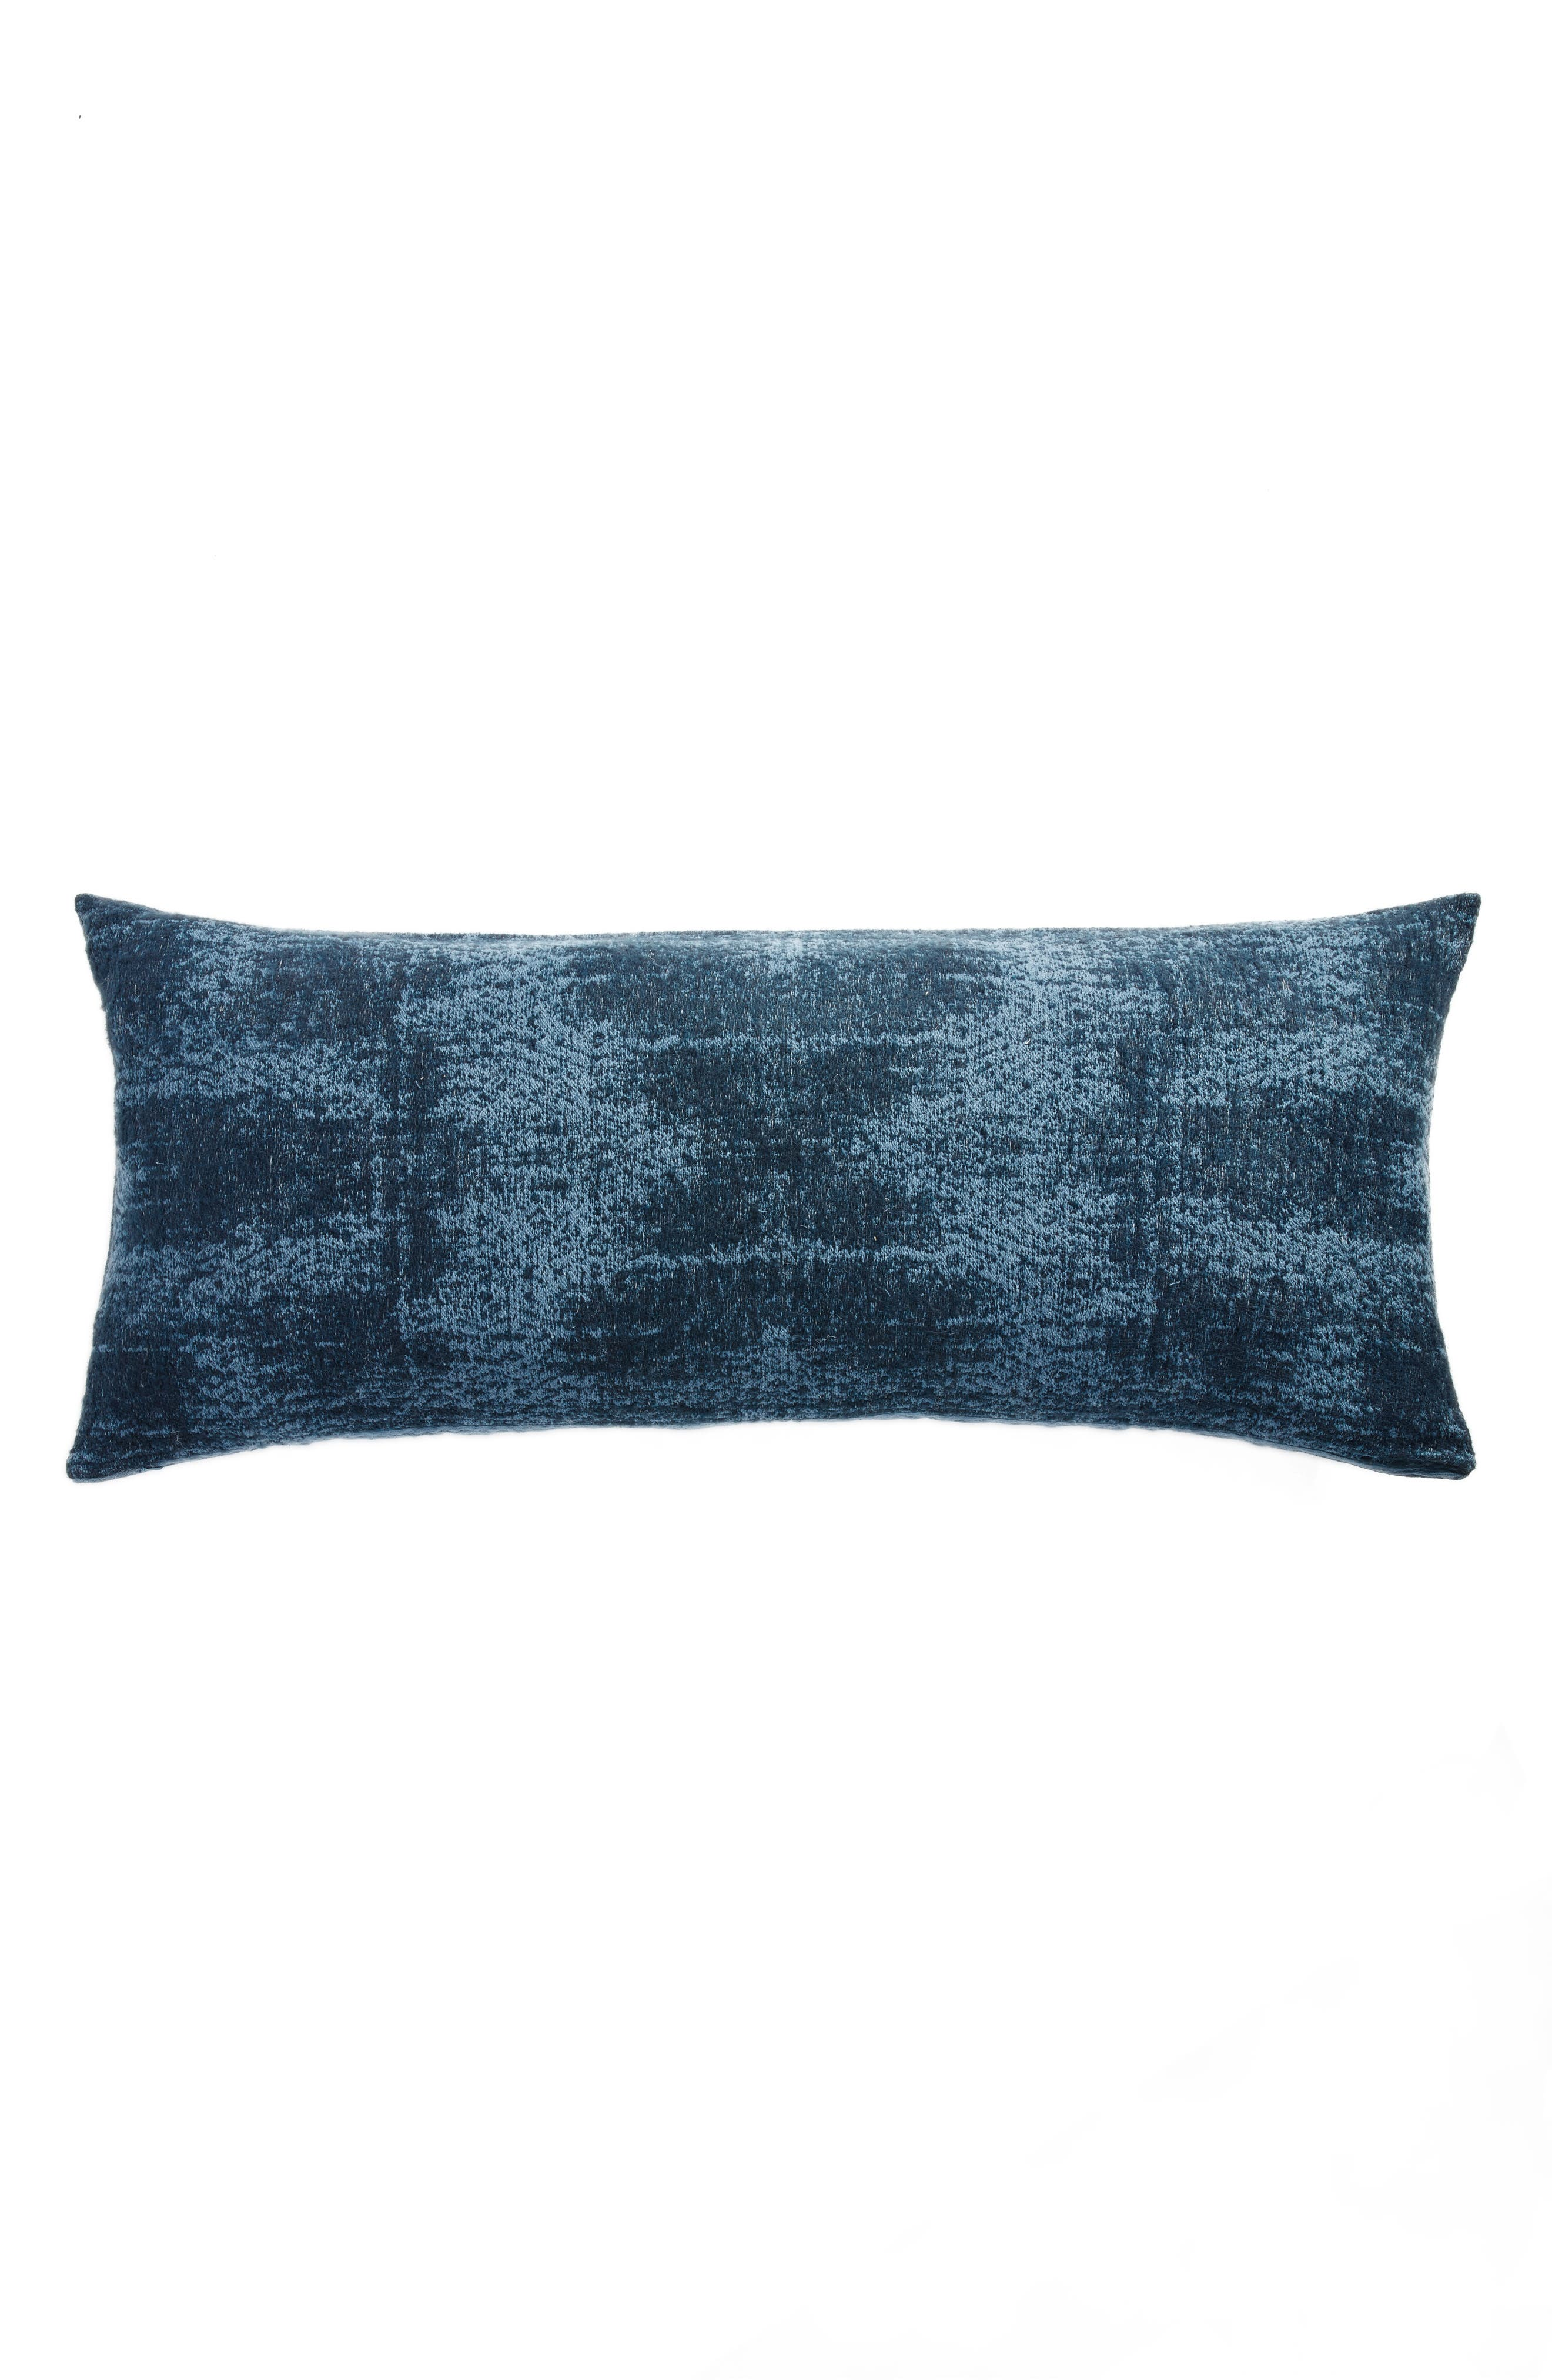 Distressed Geo Accent Pillow,                         Main,                         color, Blue Mirage